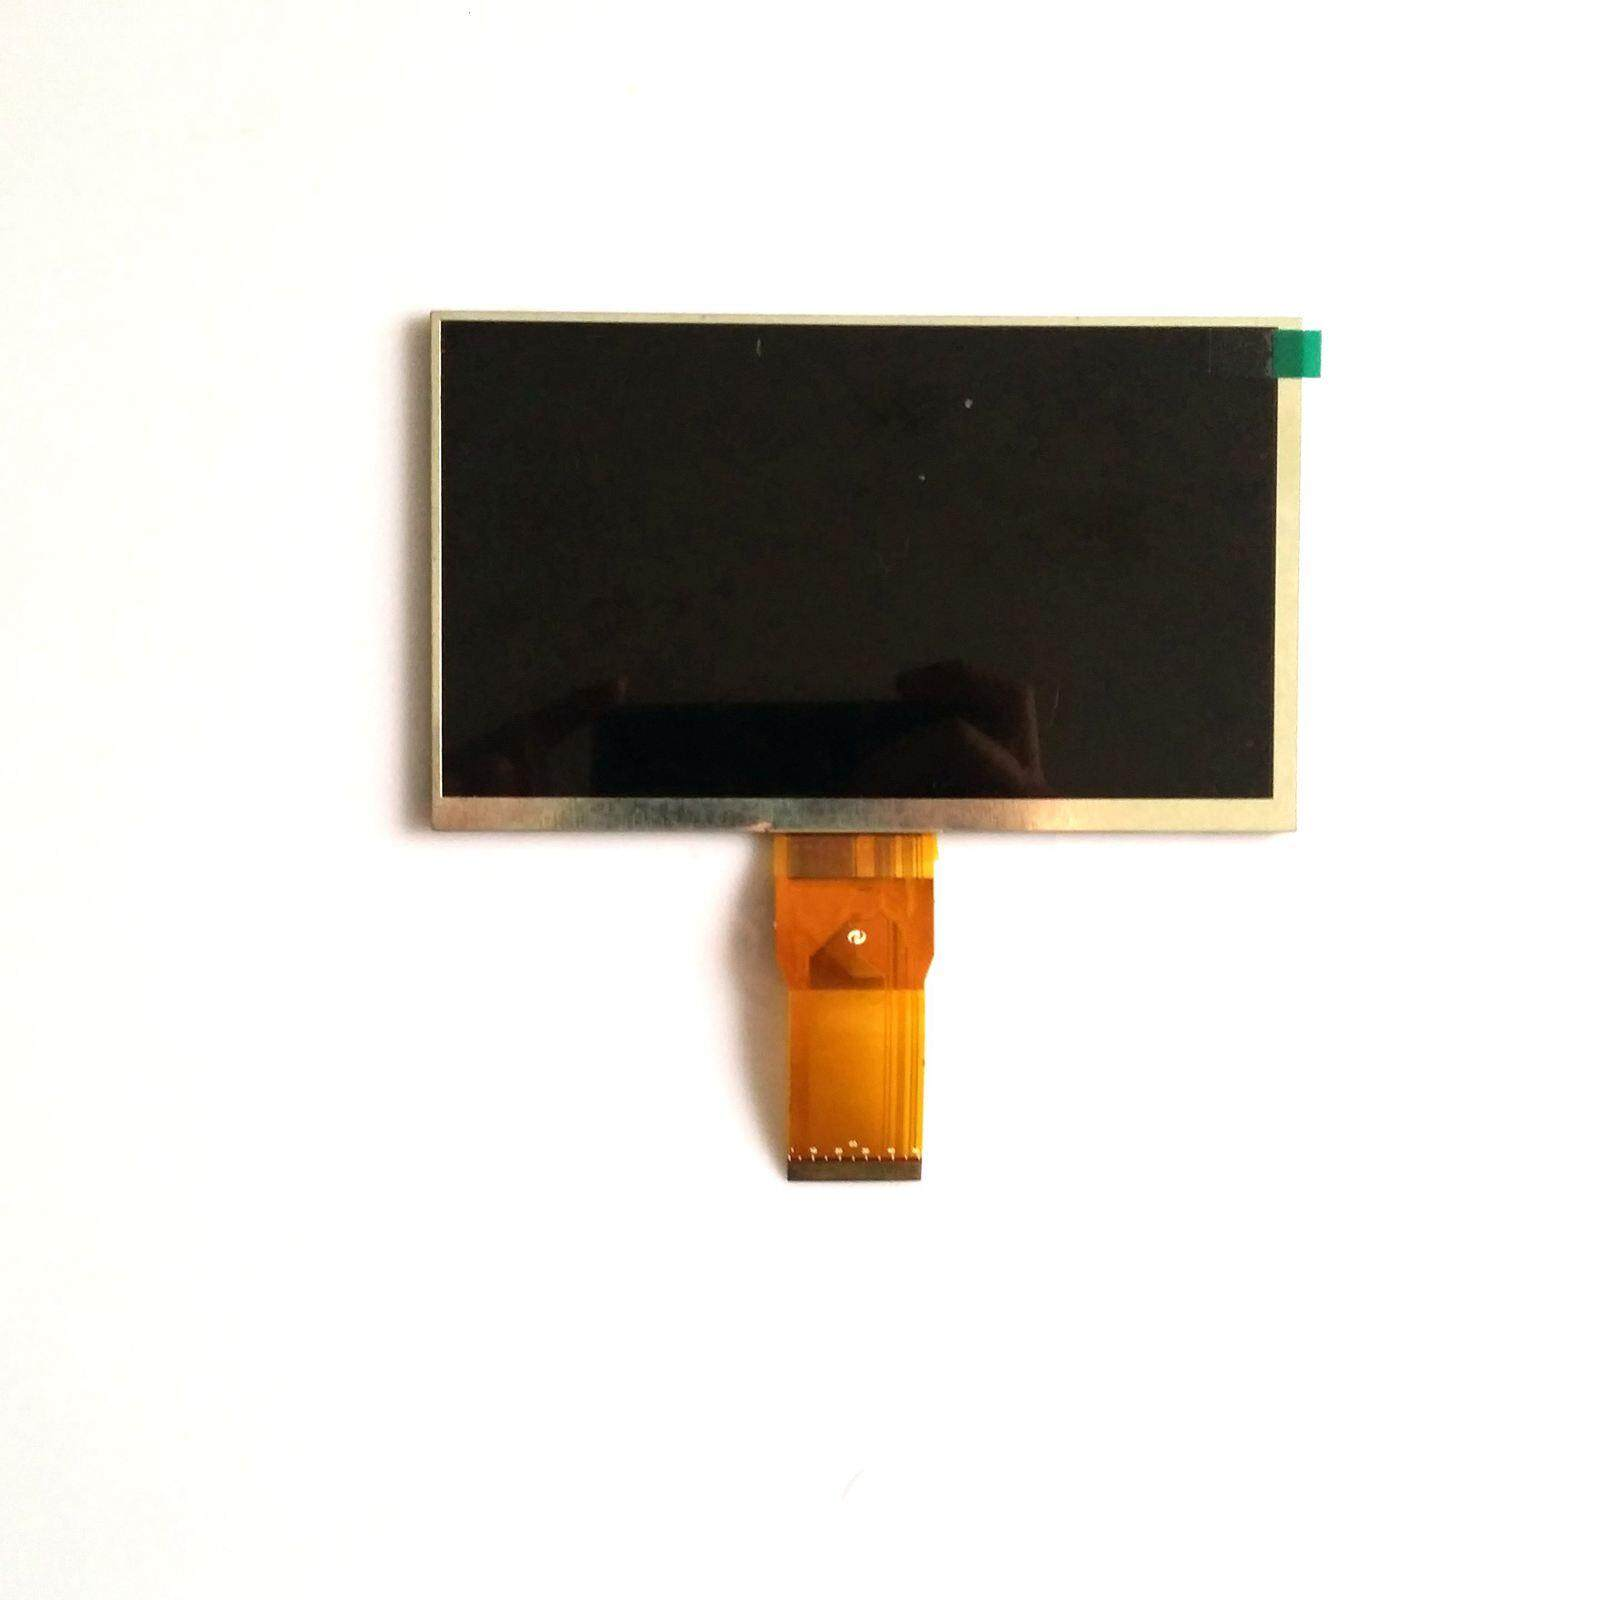 Black Color EUTOPING R New 10.1 inch CEO-1001-JTY Touch Screen Digitizer Replacement for Tablet